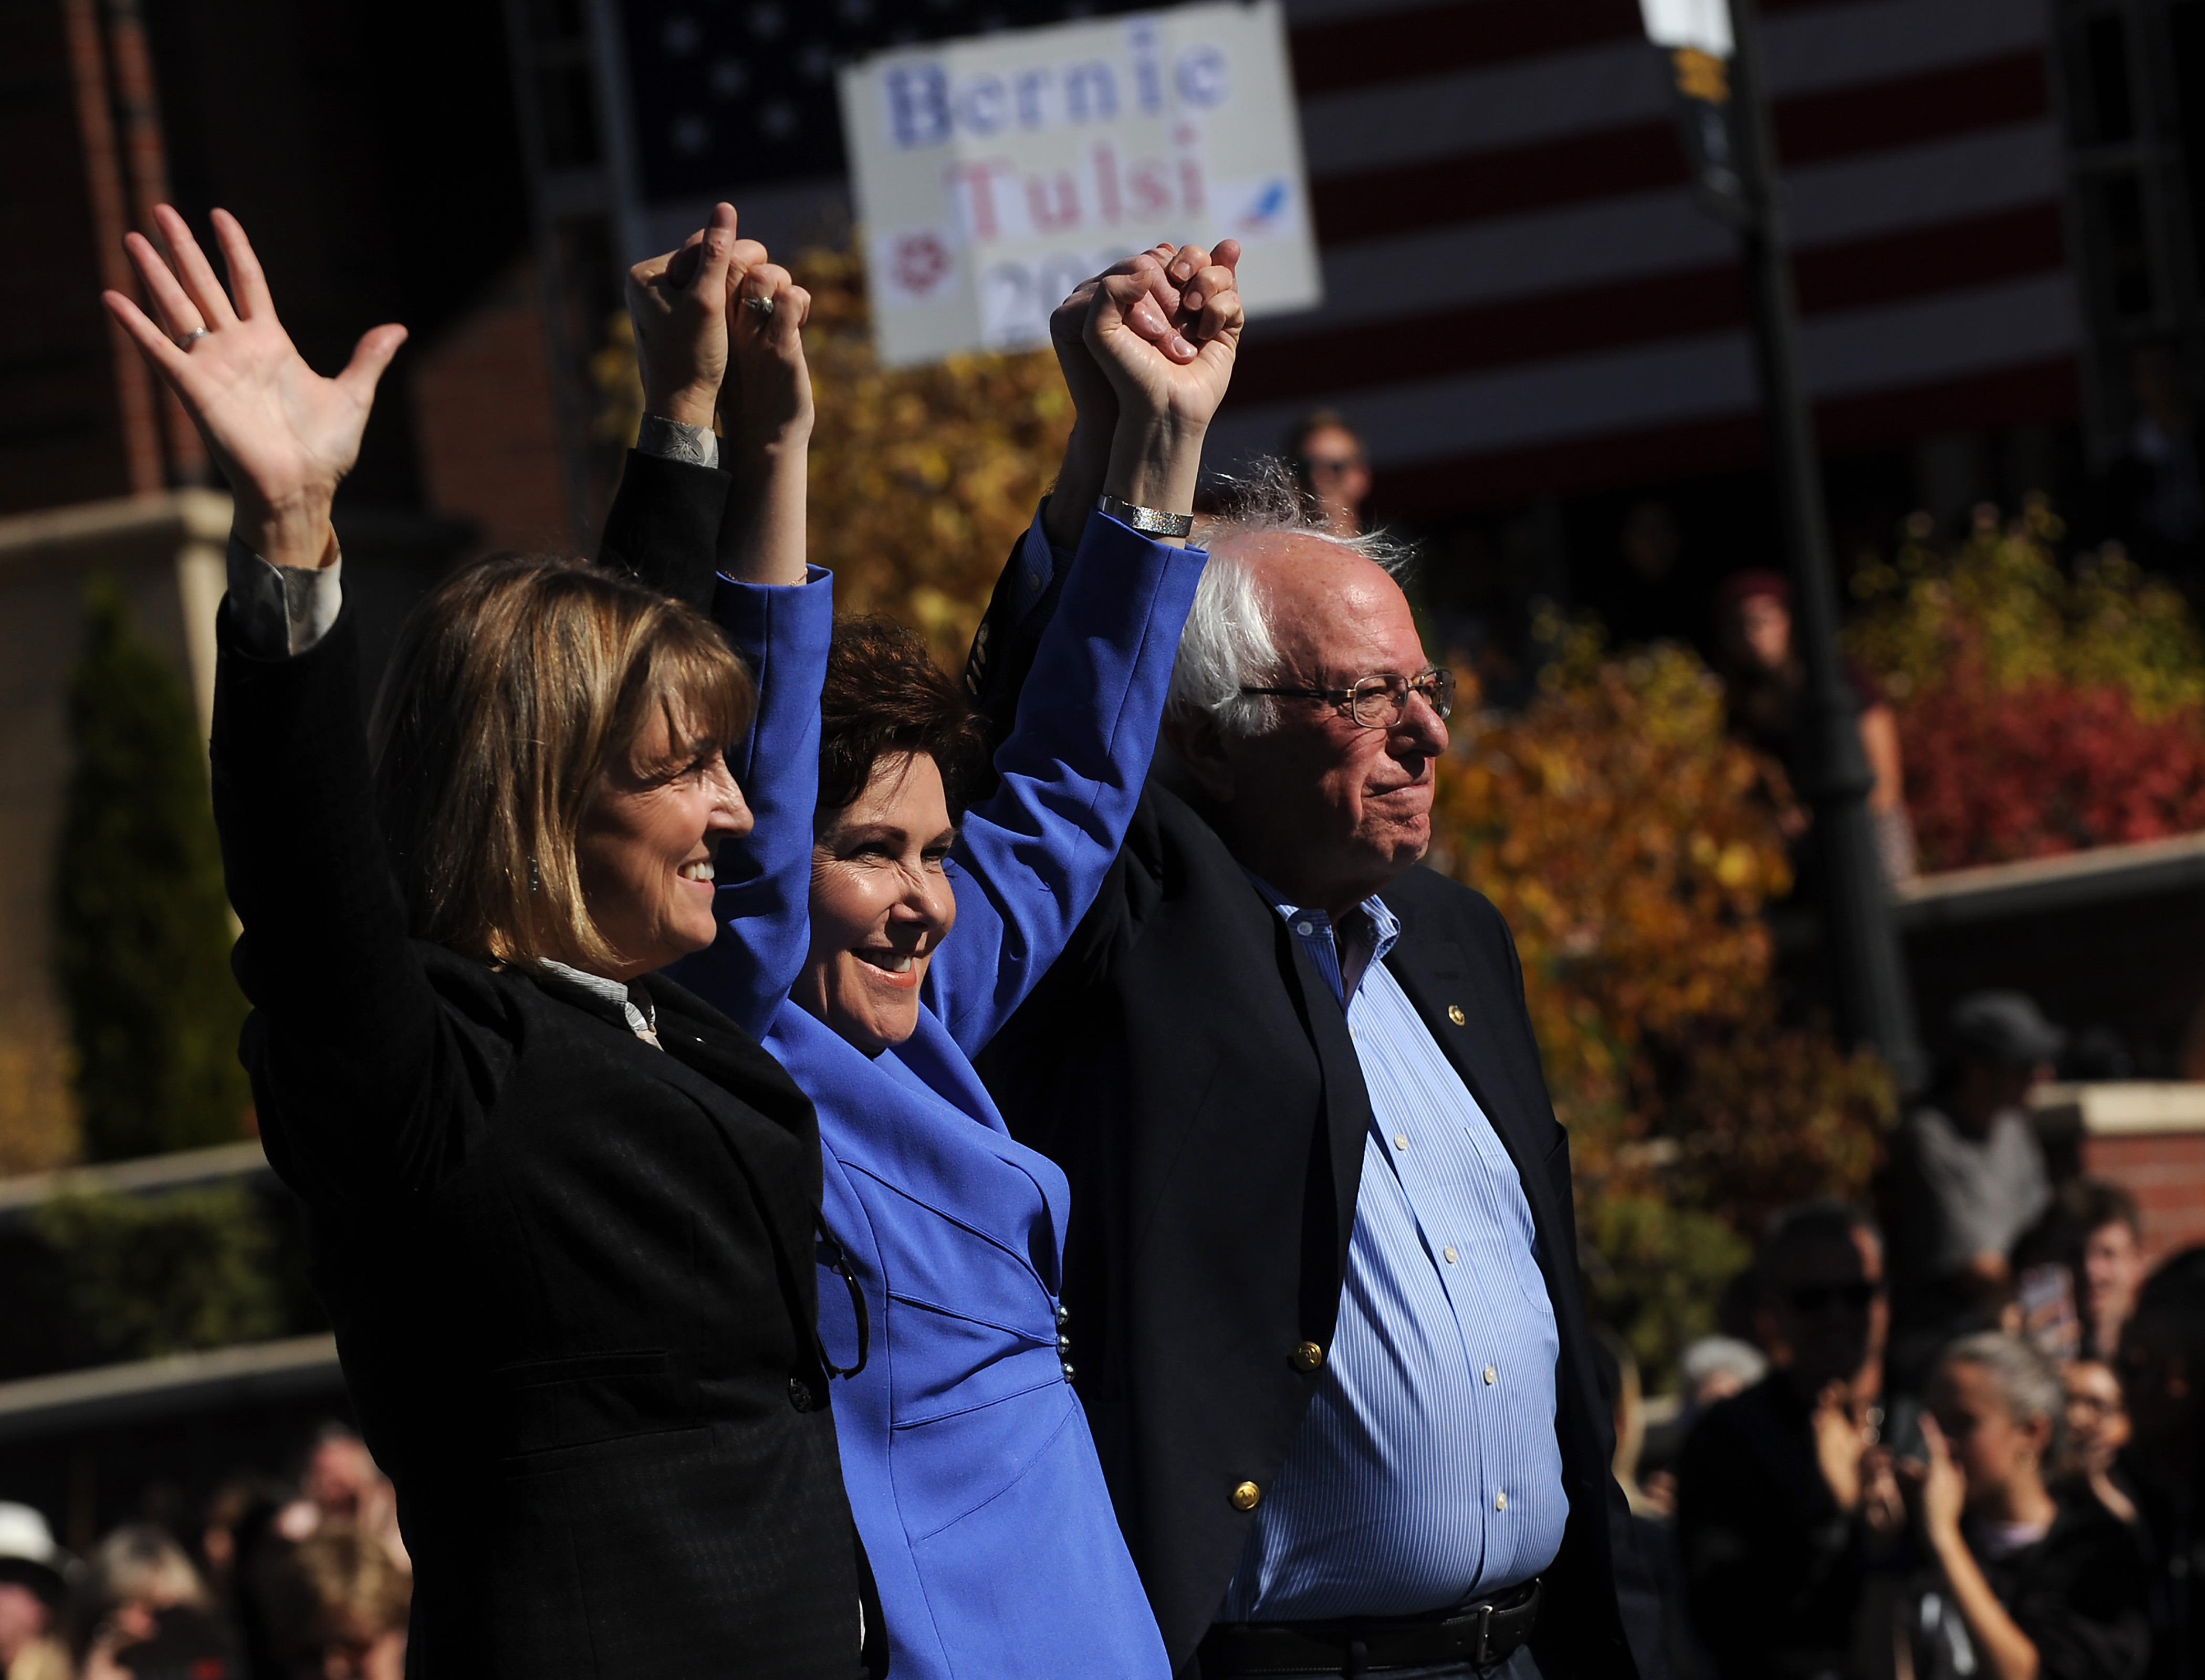 Senator Bernie Sanders, right, campaigns for Nevada Democrats U.S. Rep. Jacky Rosen, middle, and Kate Marshall, Democratic candidate for Nevada lieutenant governor, on the University of Nevada, Reno campus on Oct. 25, 2018.